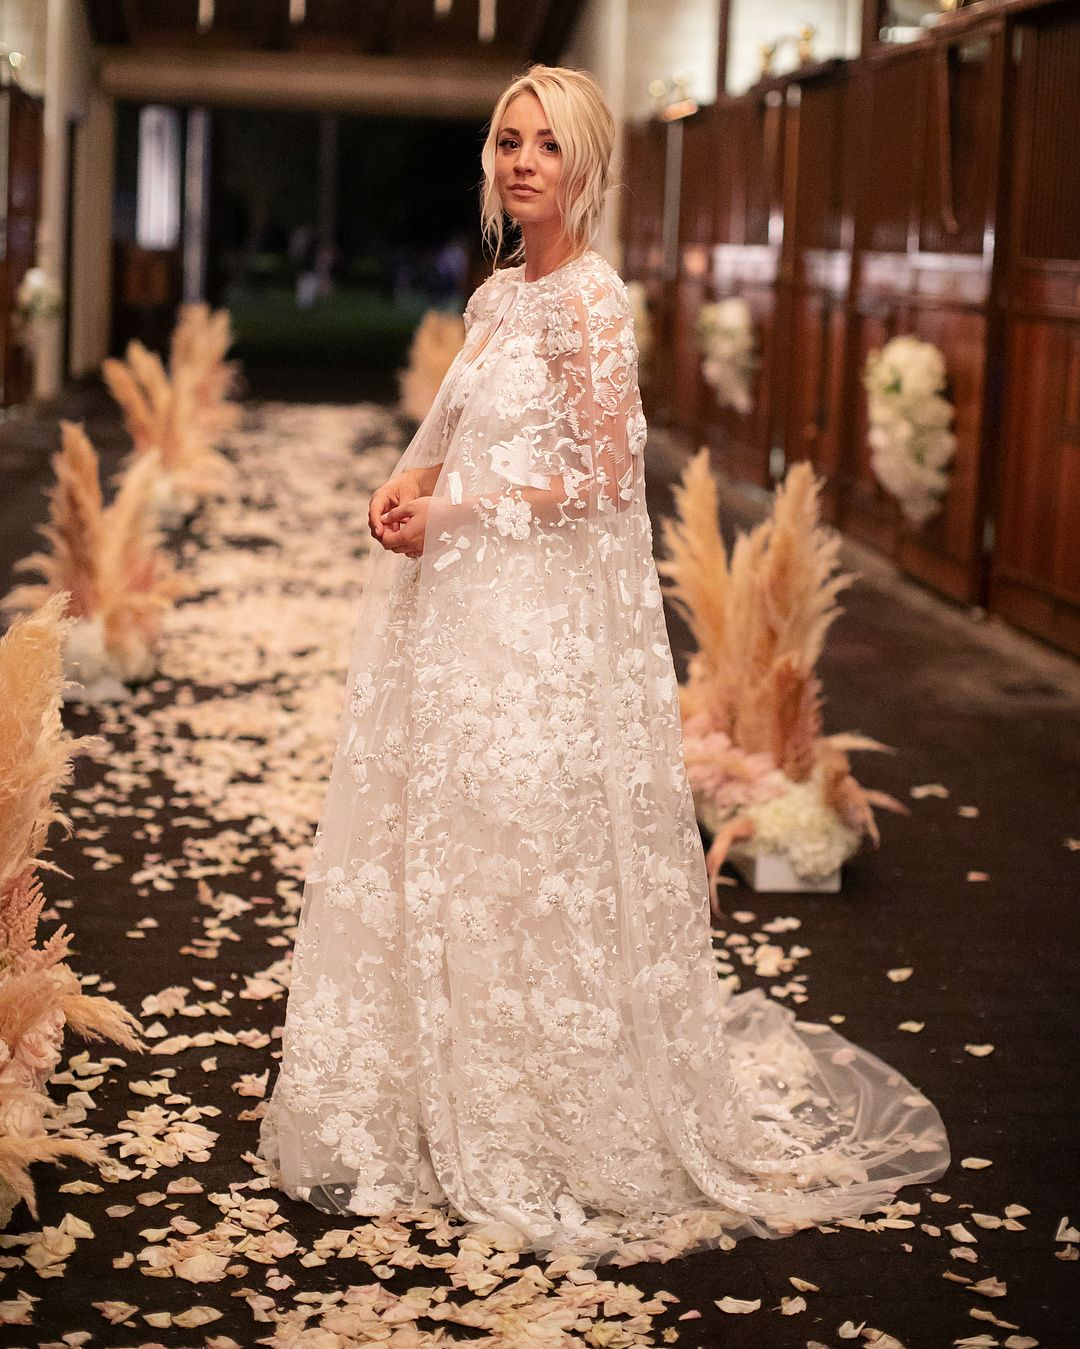 Kaley Cuoco In Reem Acra Wedding Gown And Cape Celebrity Bride Celebrity Wedding Dresses Wedding Dresses